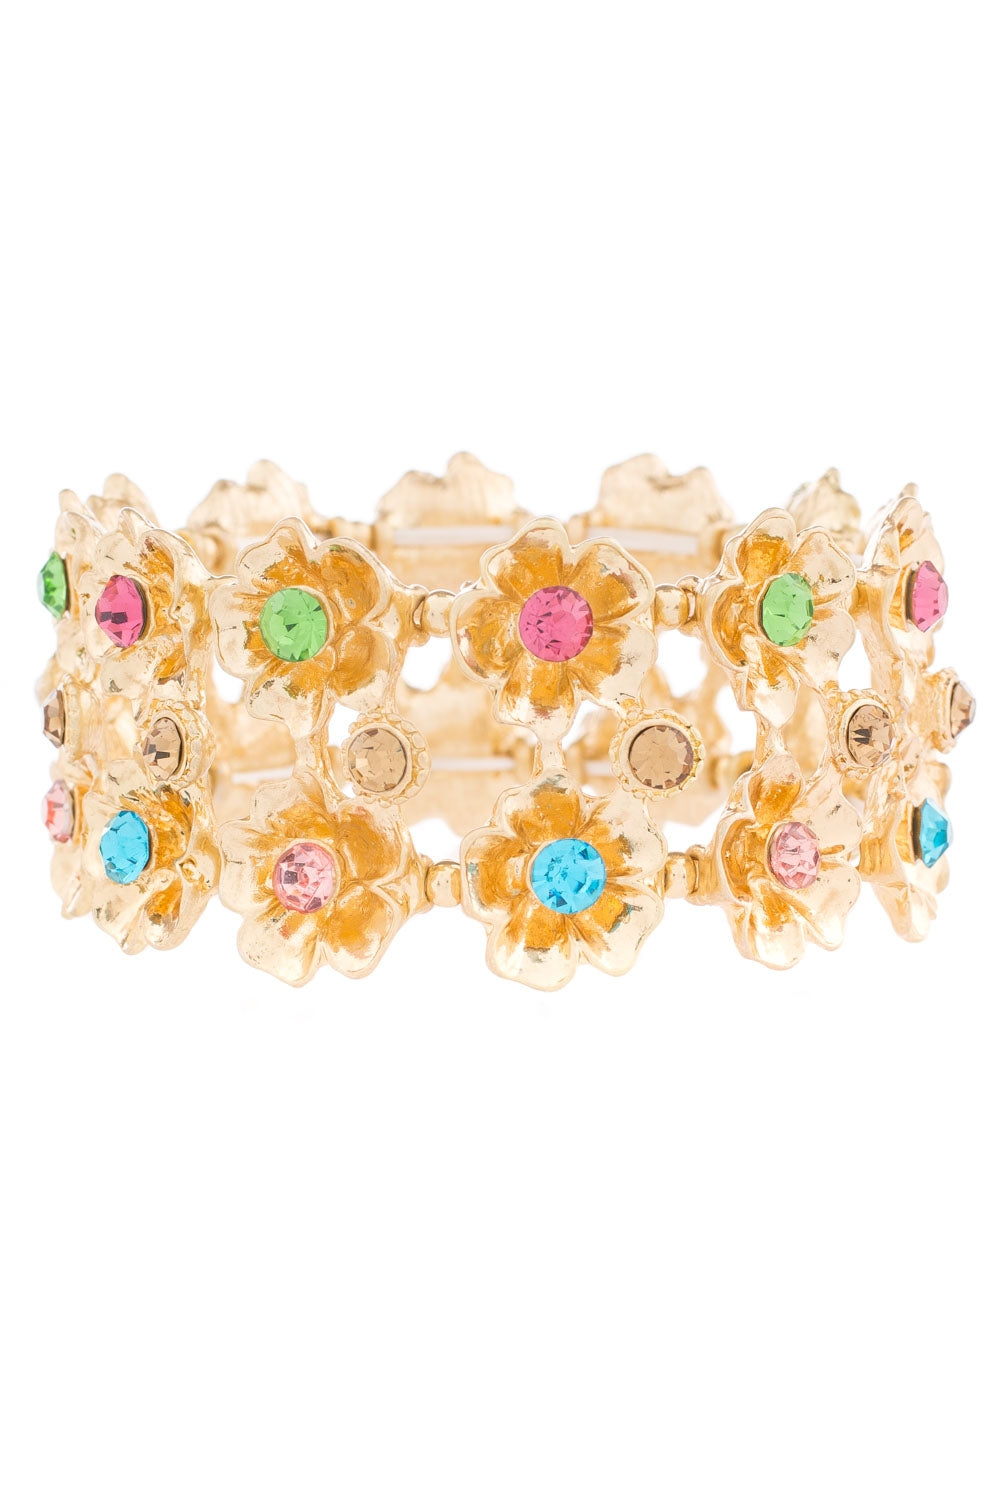 Type 1 Enchanted Gems Bracelet